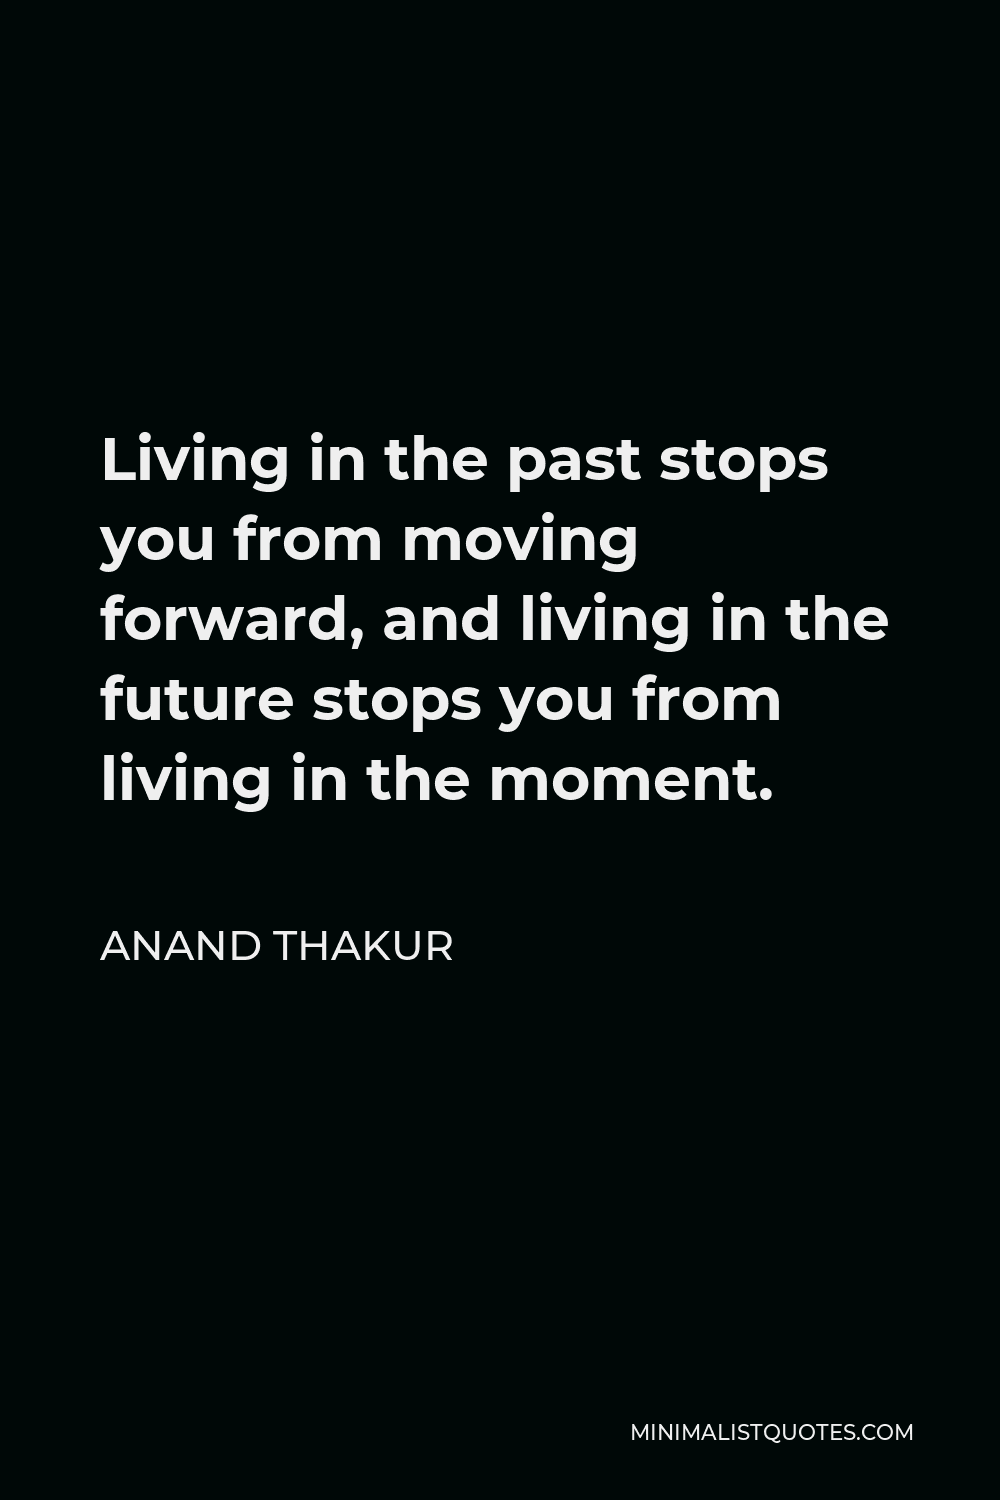 Anand Thakur Quote - Living in the past stops you from moving forward, and living in the future stops you from living in the moment.